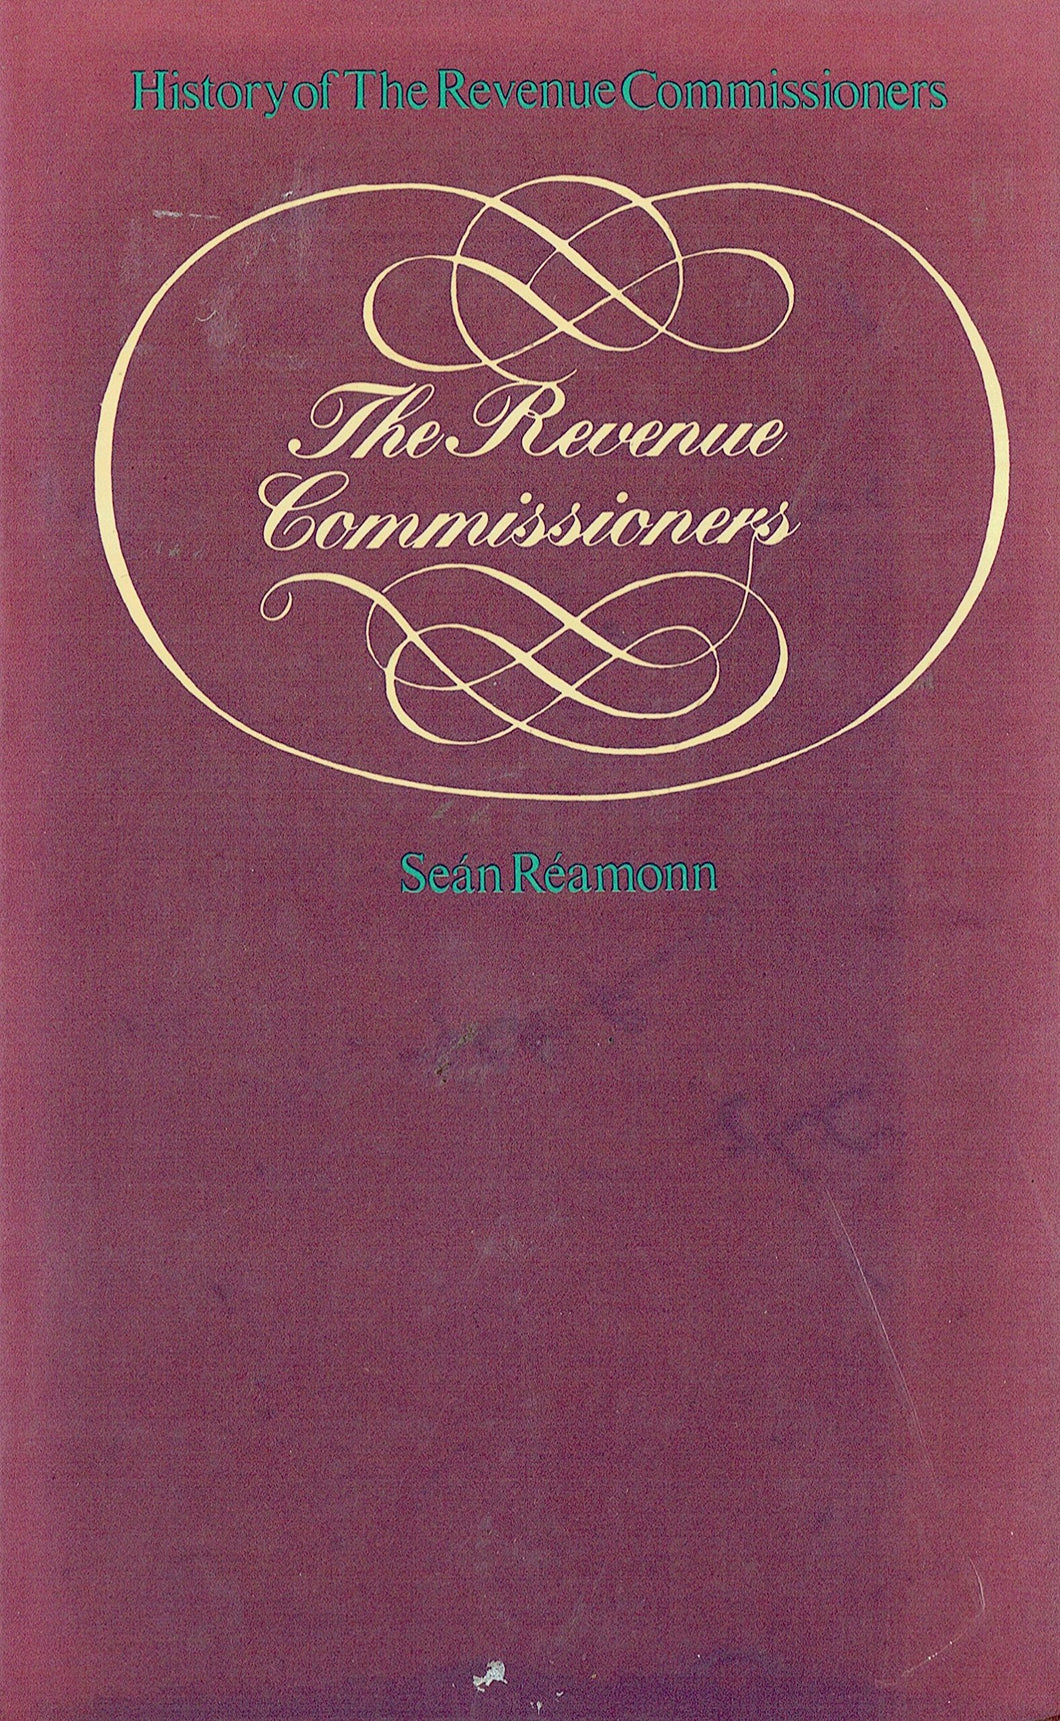 History of the Revenue Commissioners